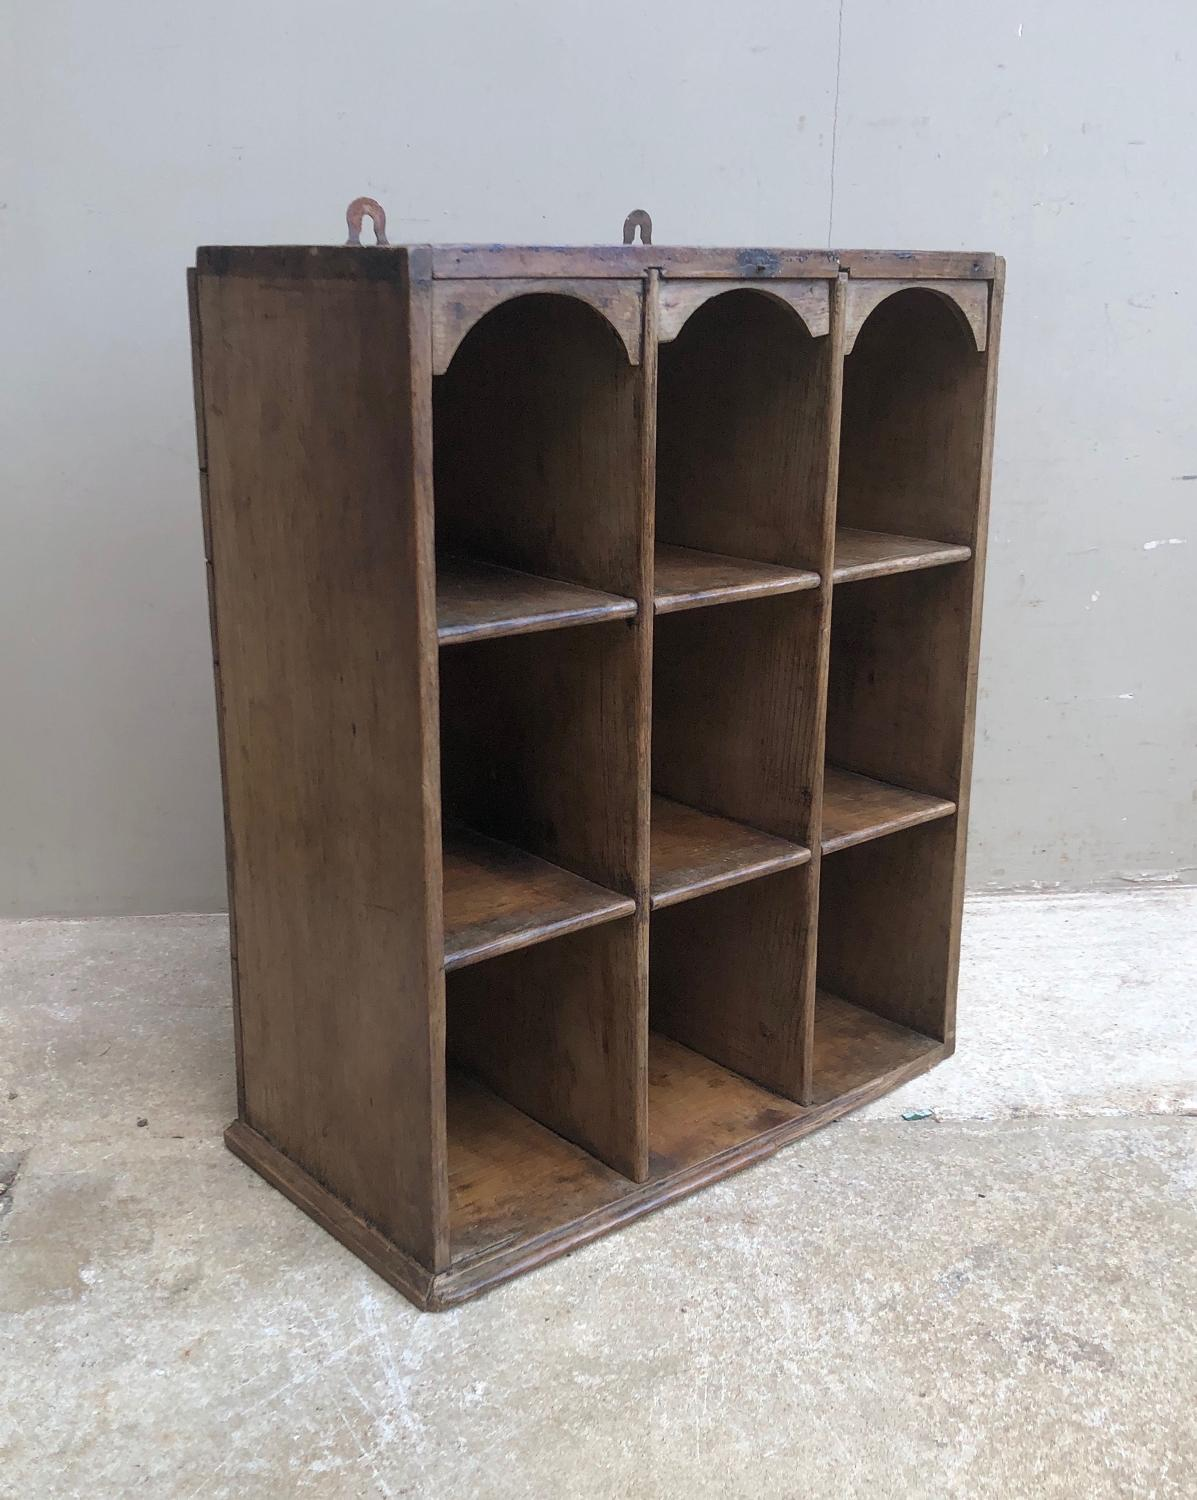 Late Victorian Small Pine Pigeon Holes - Perfect Kitchen Unit